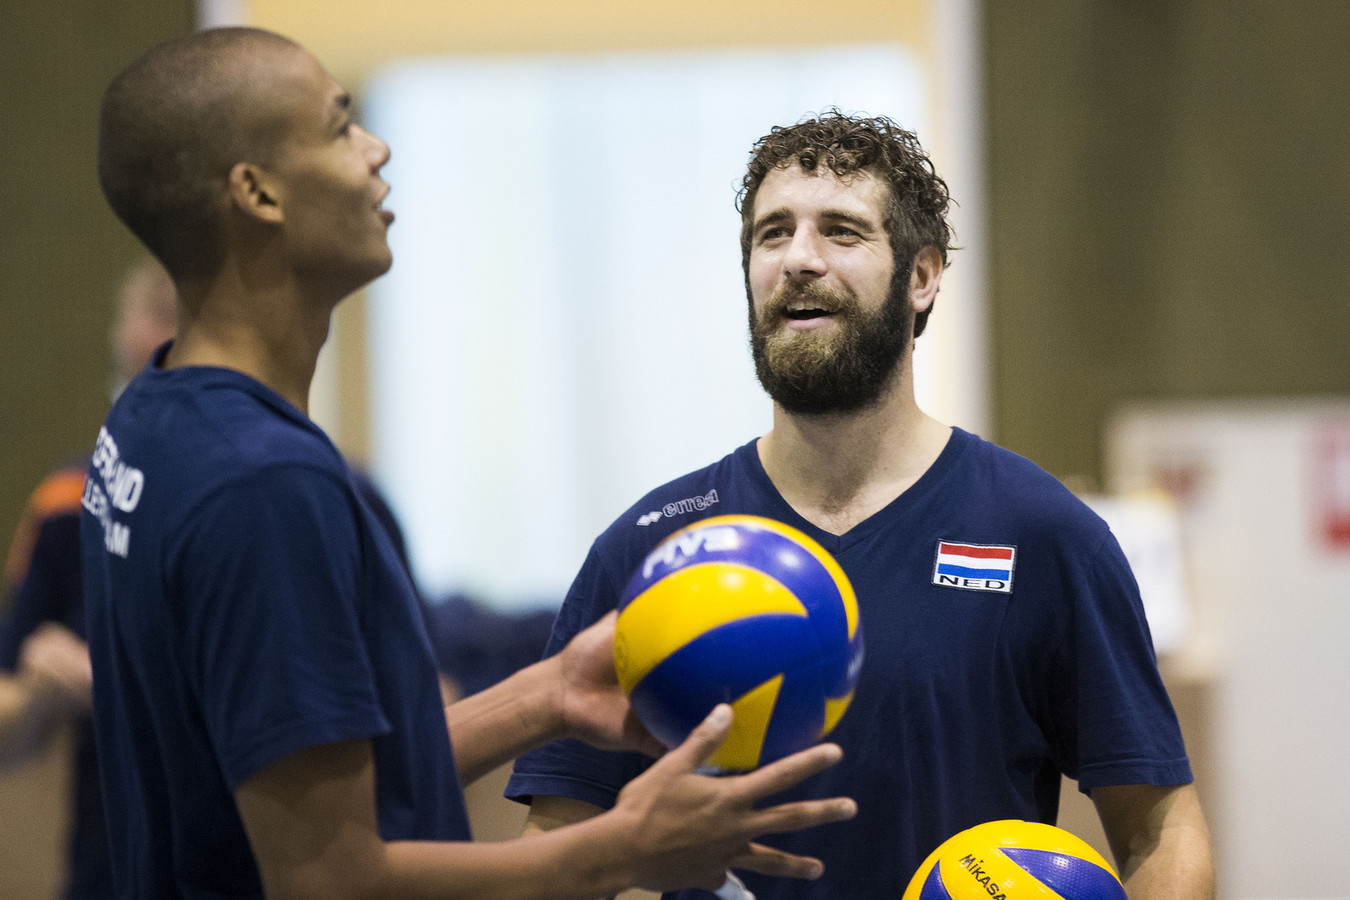 Yannick van Harskamp (rechts) als aanvoerder van het Nederlands volleybalteam. De ex-international begint een volleybalschool in Nijmegen.